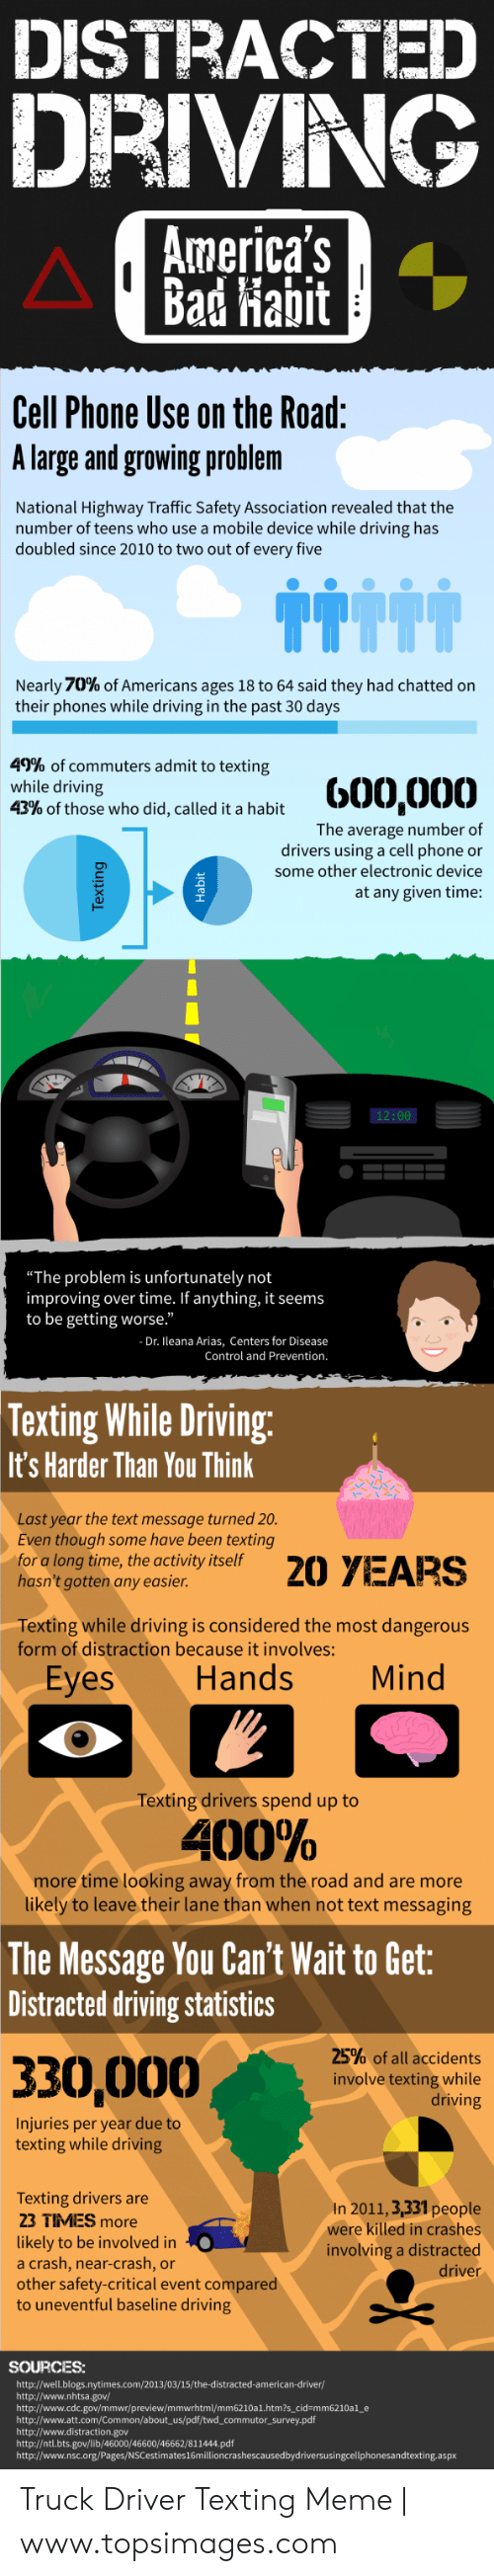 """Topsimages: DISTRACTED  DRIVING  America's  Bad Habit  Cell Phone Use on the Road  A large and growing problem  National Highway Traffic Safety Association revealed that the  number of teens who use a mobile device while driving has  doubled since 2010 to two out of every five  TTITT  Nearly 70% of Americans ages 18 to 64 said they had chatted on  their phones while driving in the past 30 days  49% of commuters admit to texting  while driving  43% of those who did, called it a habit  The average number of  drivers using a cell phone or  some other electronic device  at any given time:  """"The problem is unfortunately not  improving over time. If anything, it seems  to be getting worse.""""  Dr. Ileana Arias, Centers for Disease  Control and Prevention.  Texting While Driving  It's Harder Than You Think  Last year the text message turned 20.  Even though some have been texting  for a long time, the activity itself  hasn't gotten any easier  0 YEARS  Texting while driving is considered the most dangerous  form of distraction because it involves:  Hands Mind  Eyes  Texting drivers spend up to  400%  more time looking away from the road and are more  likely to leave their lane than when not text messaging  The Message You Can't Wait to Get:  Distracted driving statistics  25% of all accidents  involve texting while  driving  Injuries per year due to  texting while driving  Texting drivers are  23 TMES more  likely to be involved in  a crash, near-crash, or  other safety-critical event compared  to uneventful baseline driving  In 2011,3,331 people  were killed in crashes  involving a distracted  driver  http:/ Truck Driver Texting Meme 